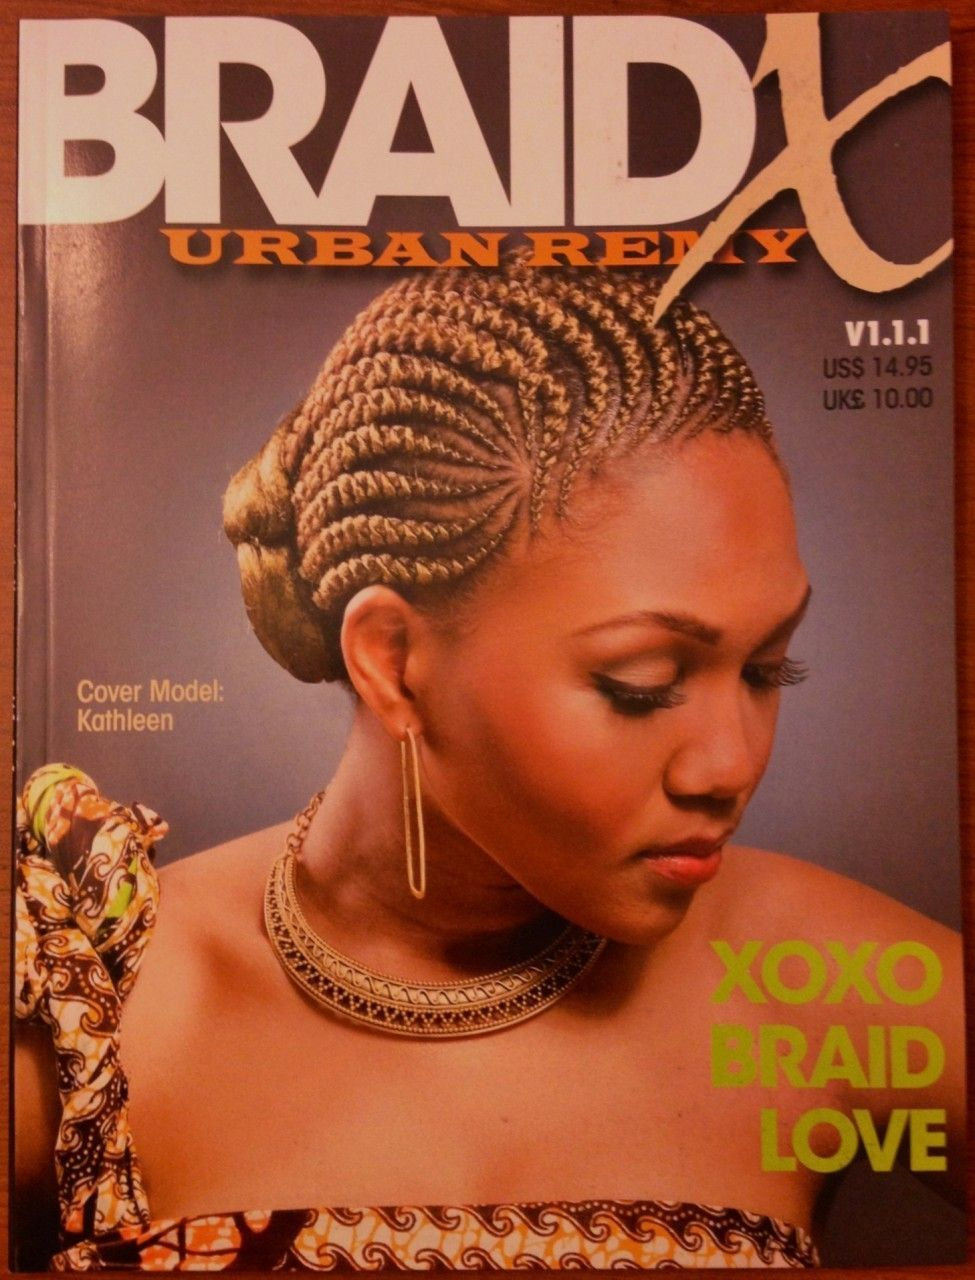 Braided Hairstyles for African Americans  African American braids natural hair style salon book